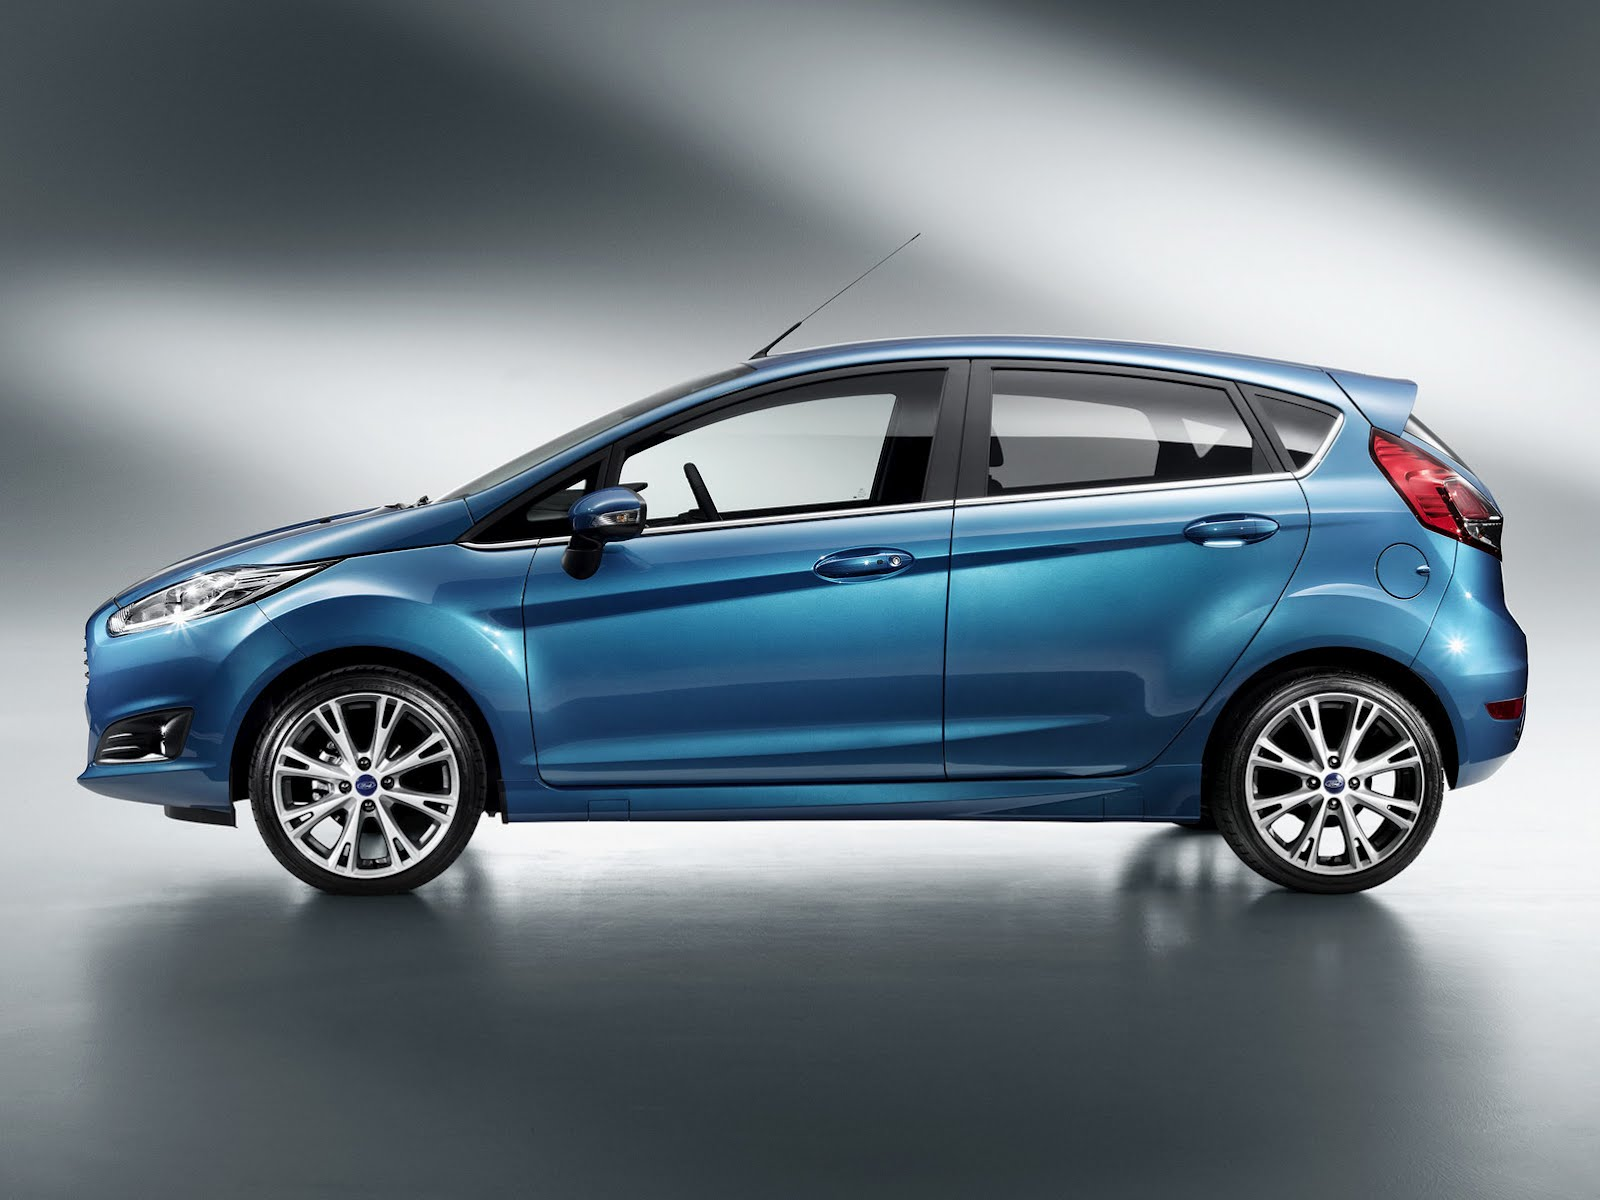 2014 ford fiesta facelift to get 10 liter ecoboost in us 2 150x150